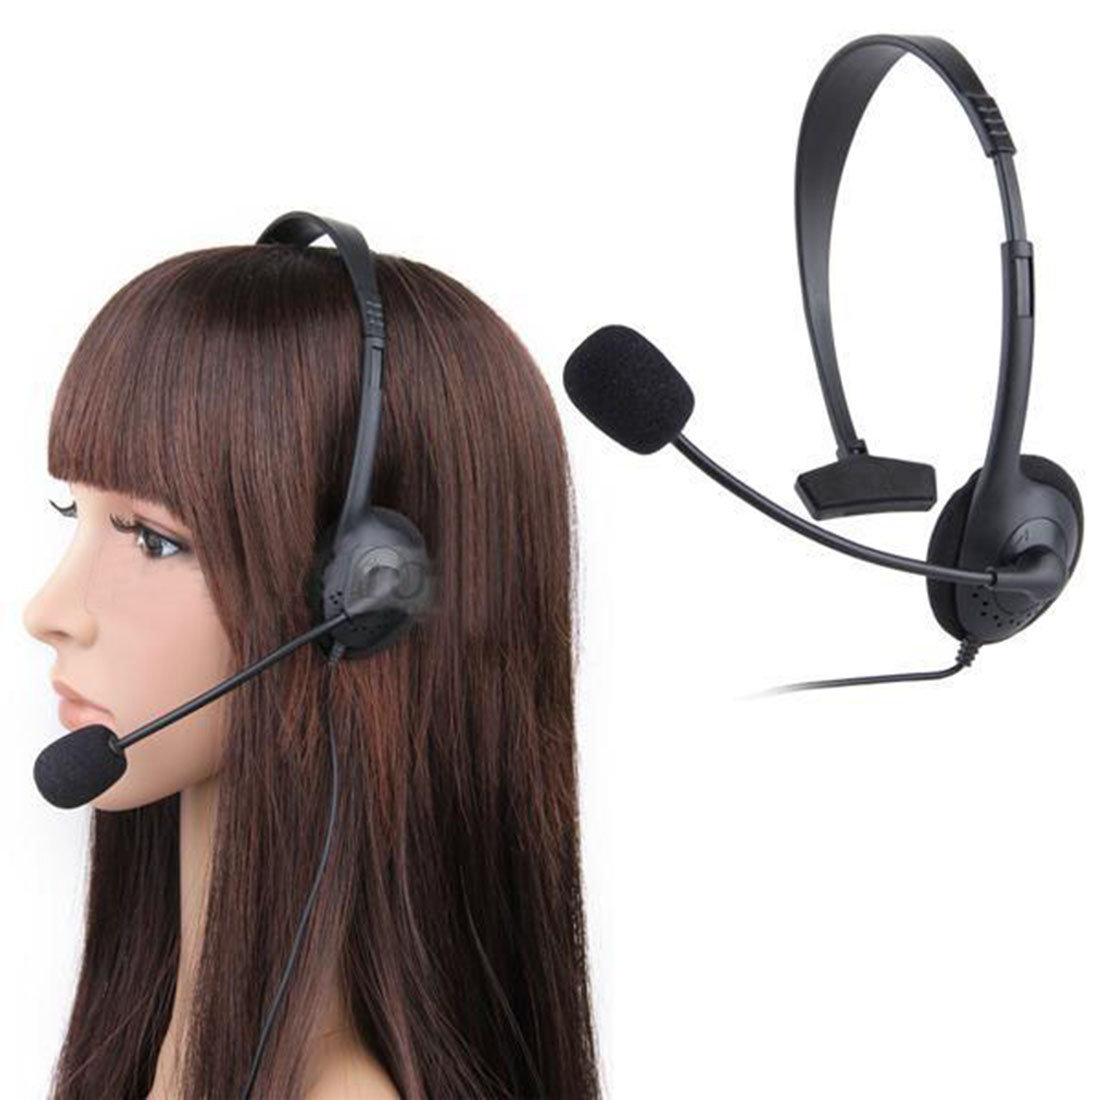 Marsnaska Hot Sale Black Video Game single ear Headset Headphone earphone with Microphone Mic for Xbox 360 Xbox360